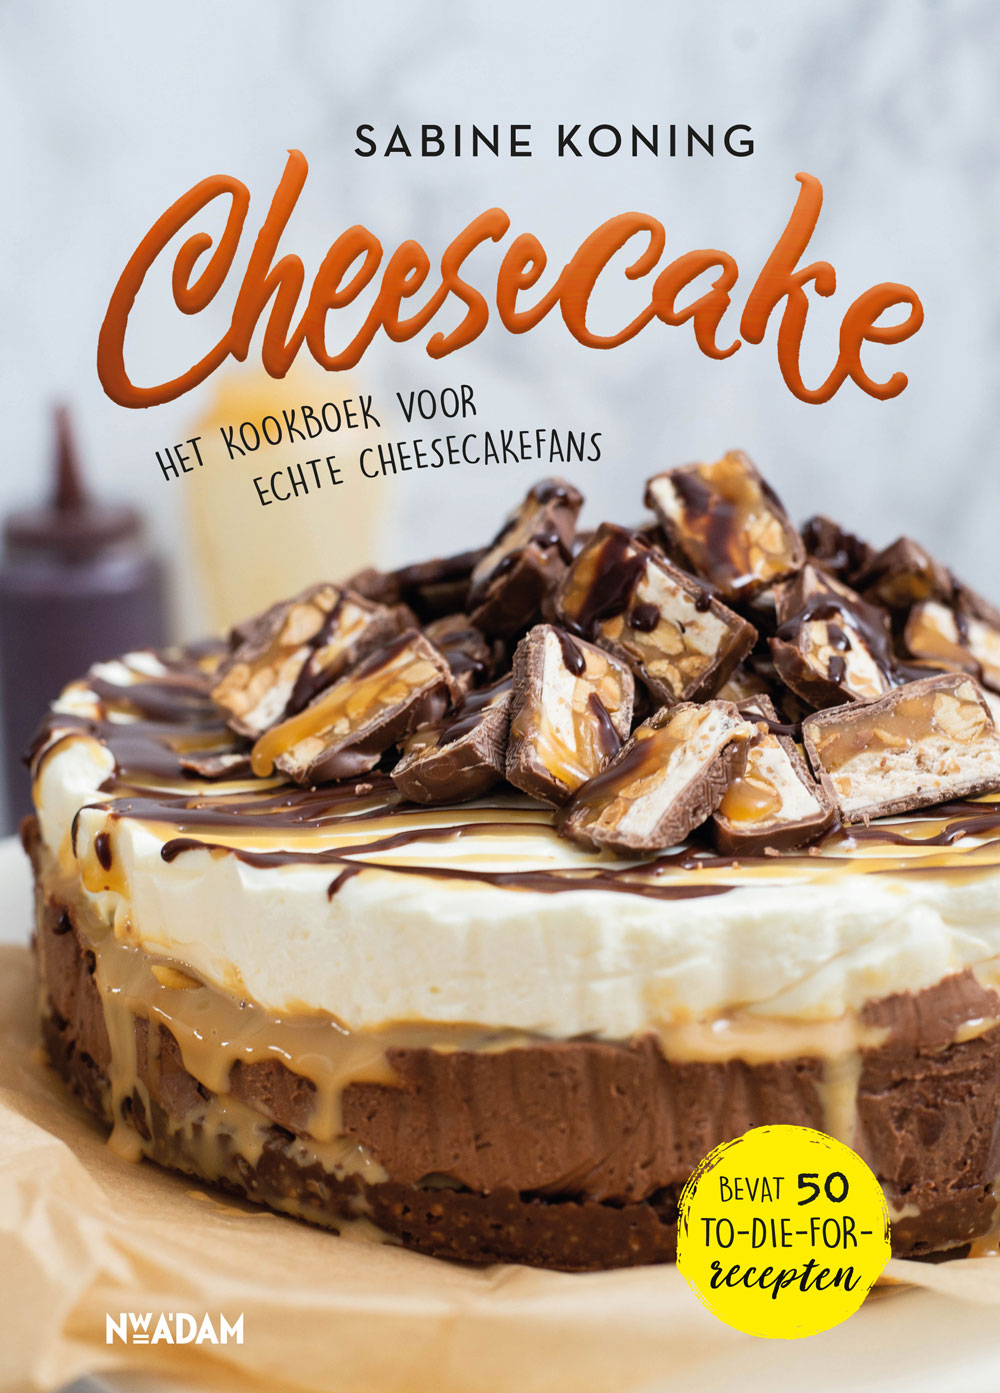 Cheesecake door Sabine Koning